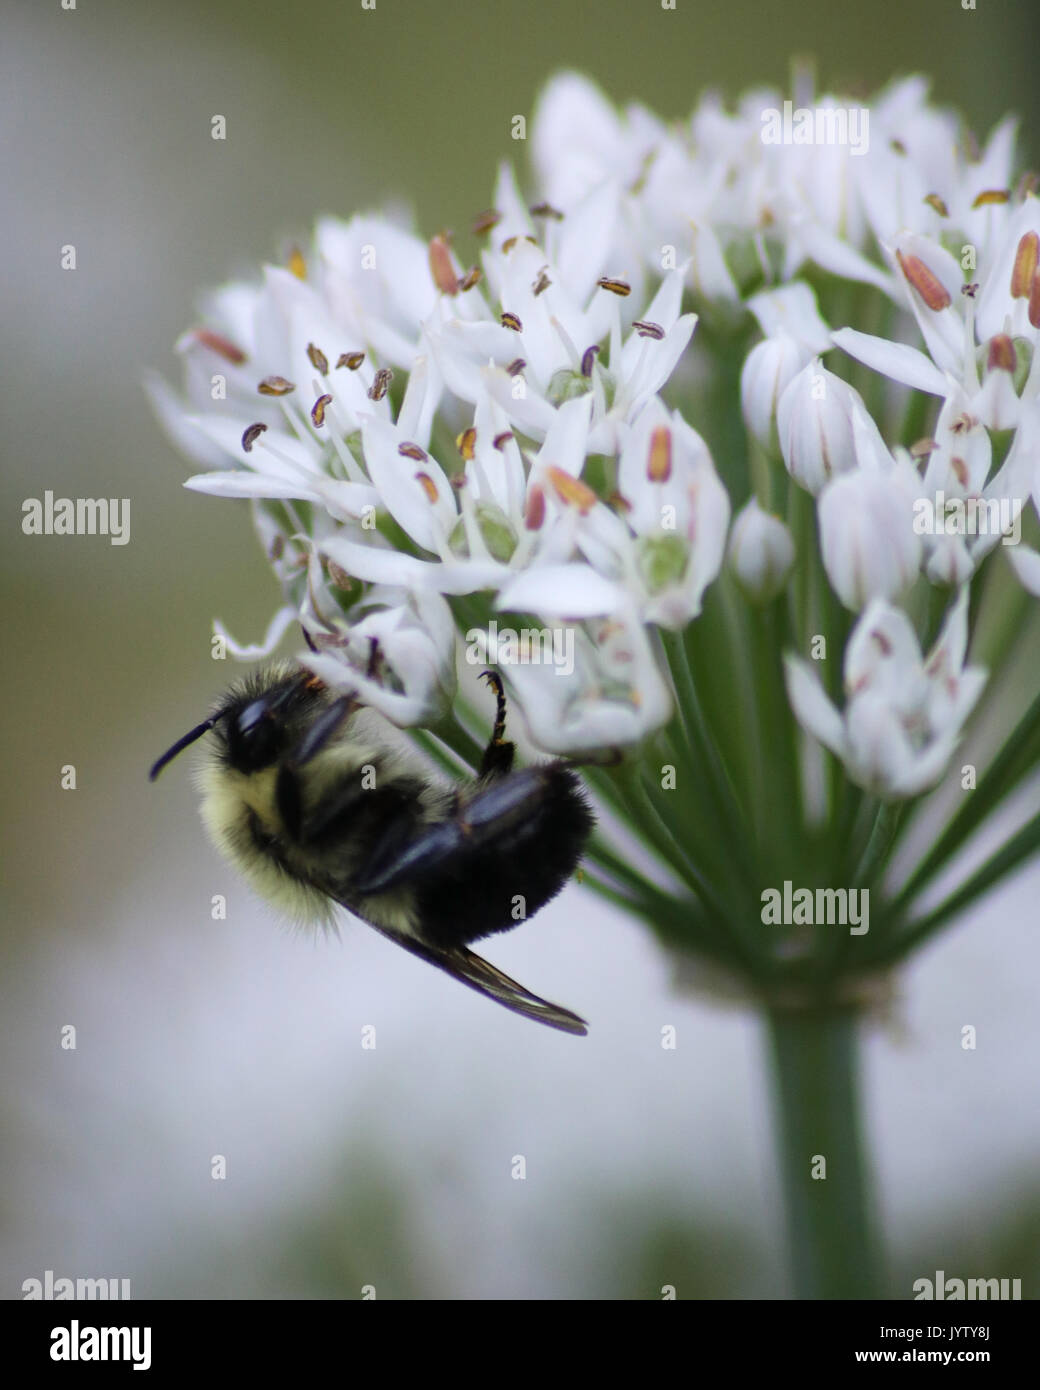 Eastern Carpenter Bee on pretty white Garlic plant flowers - Stock Image